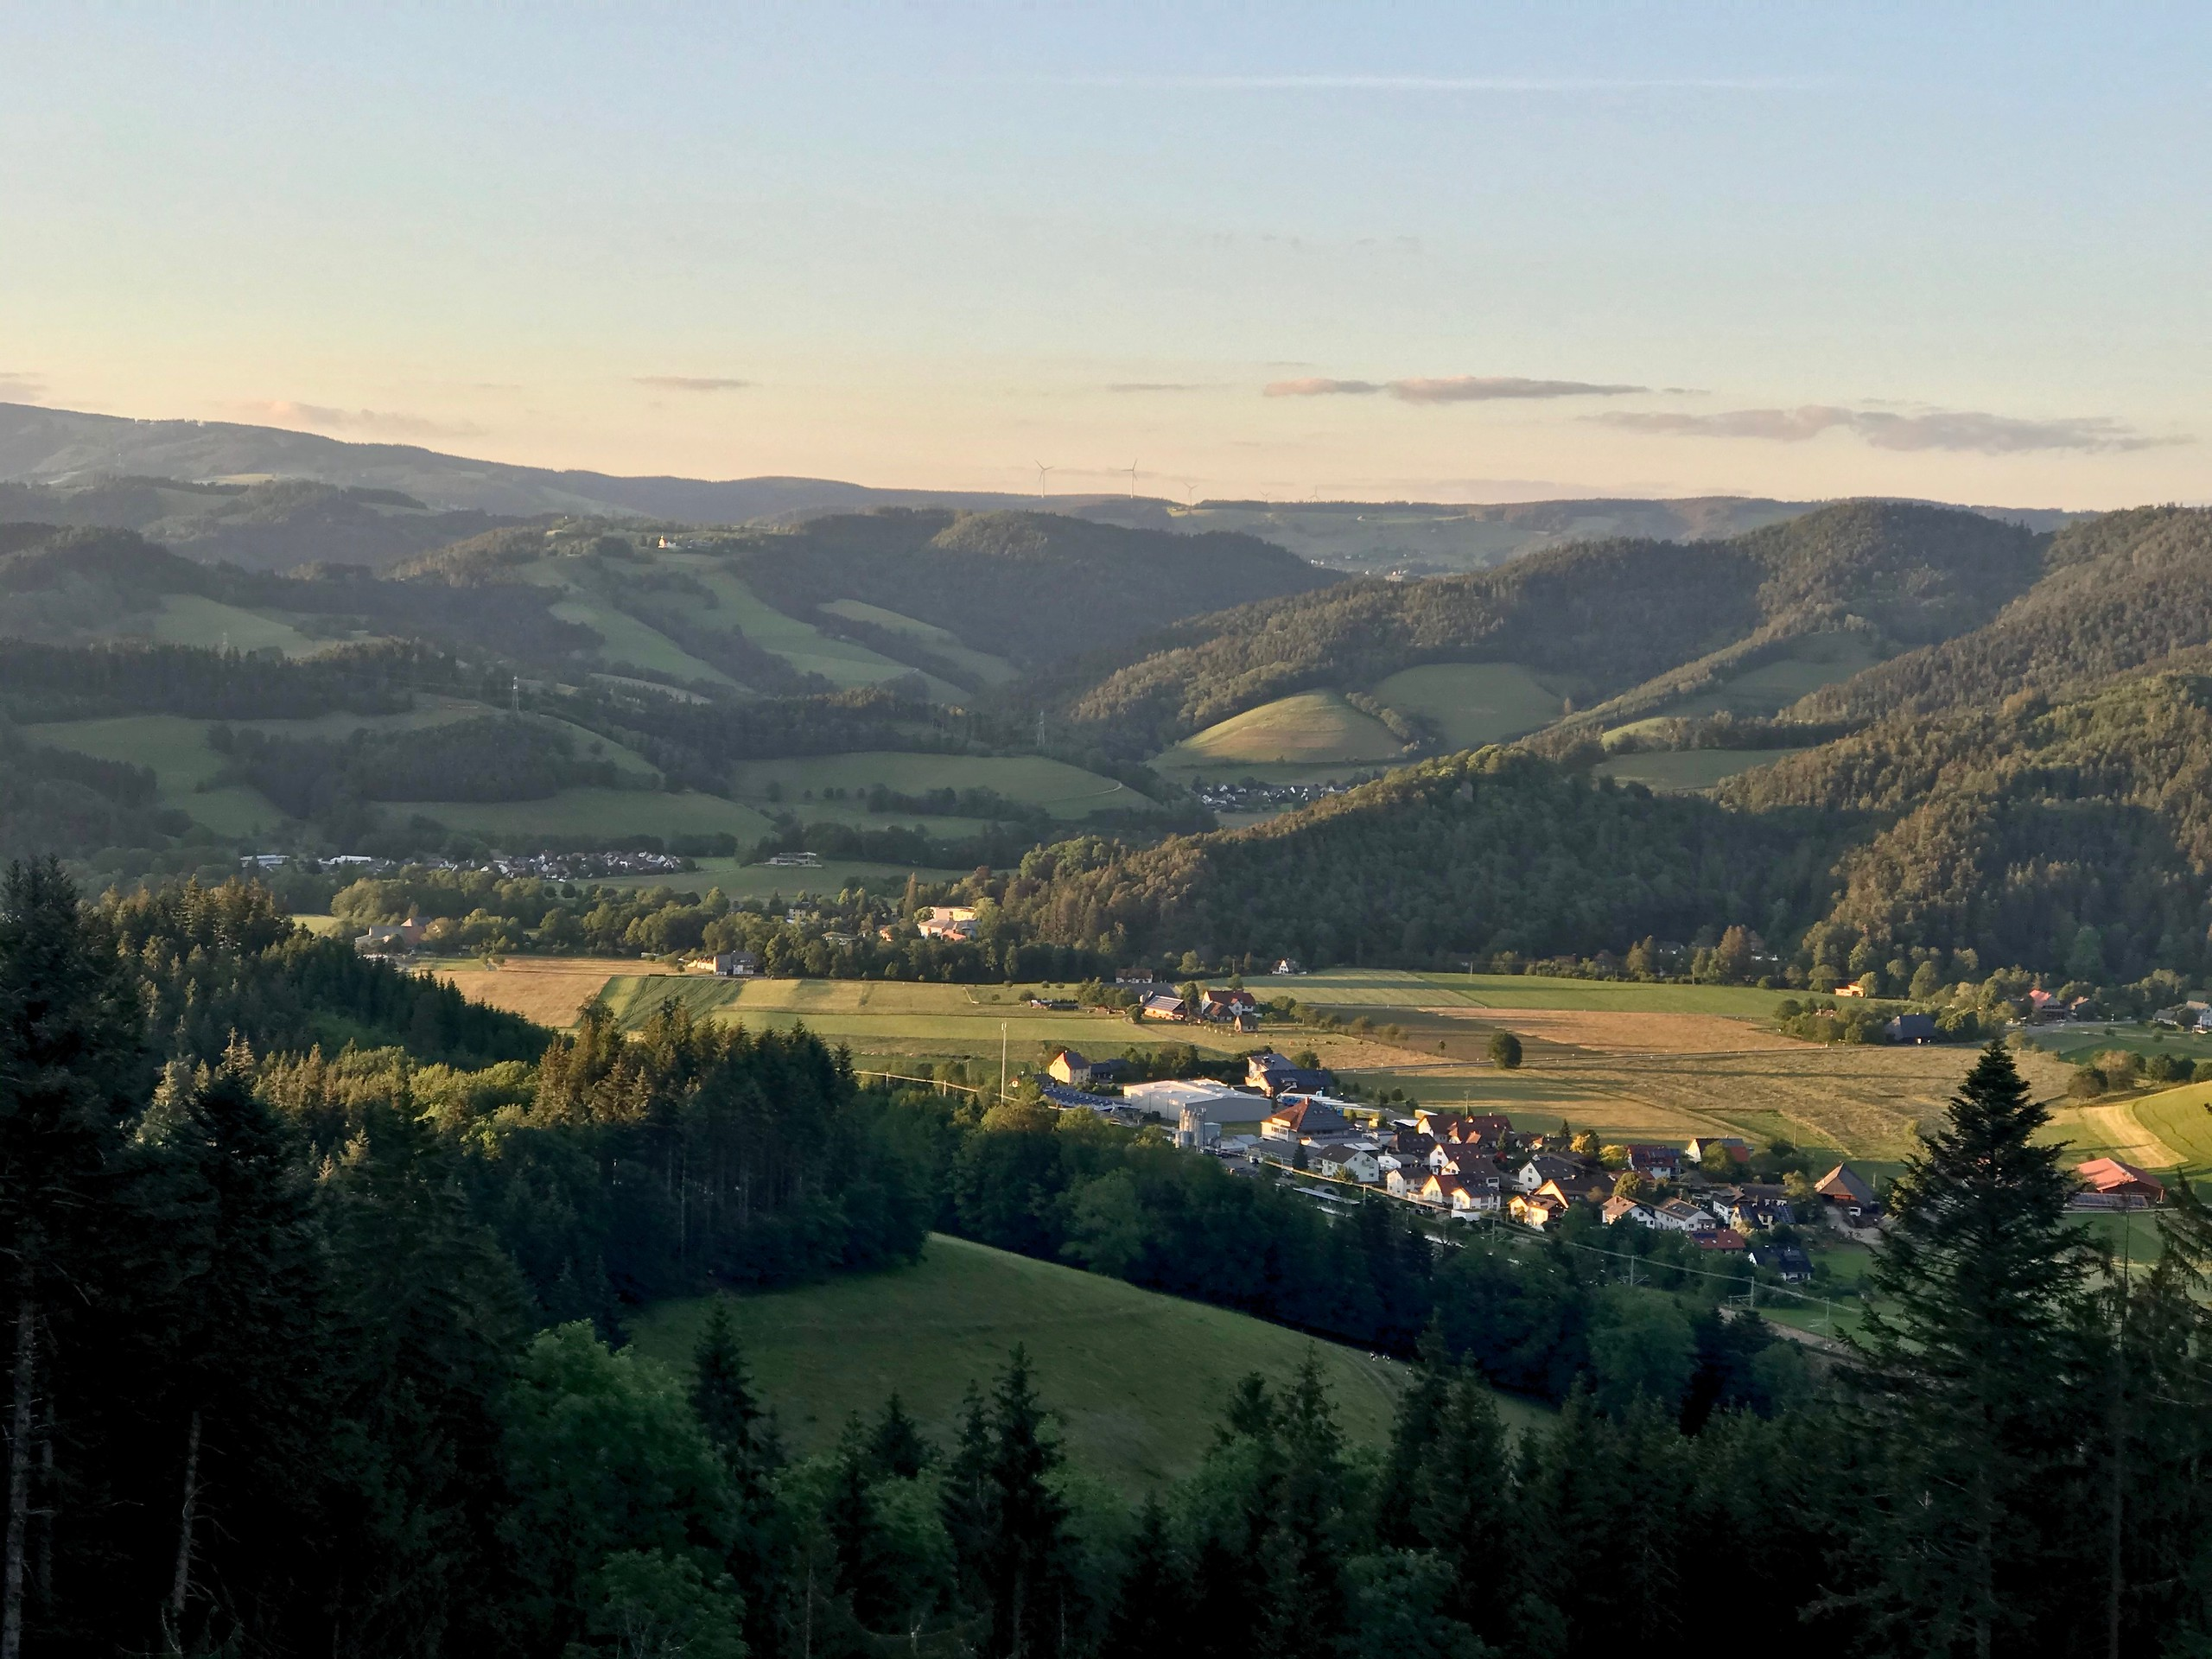 Himmelreich from above